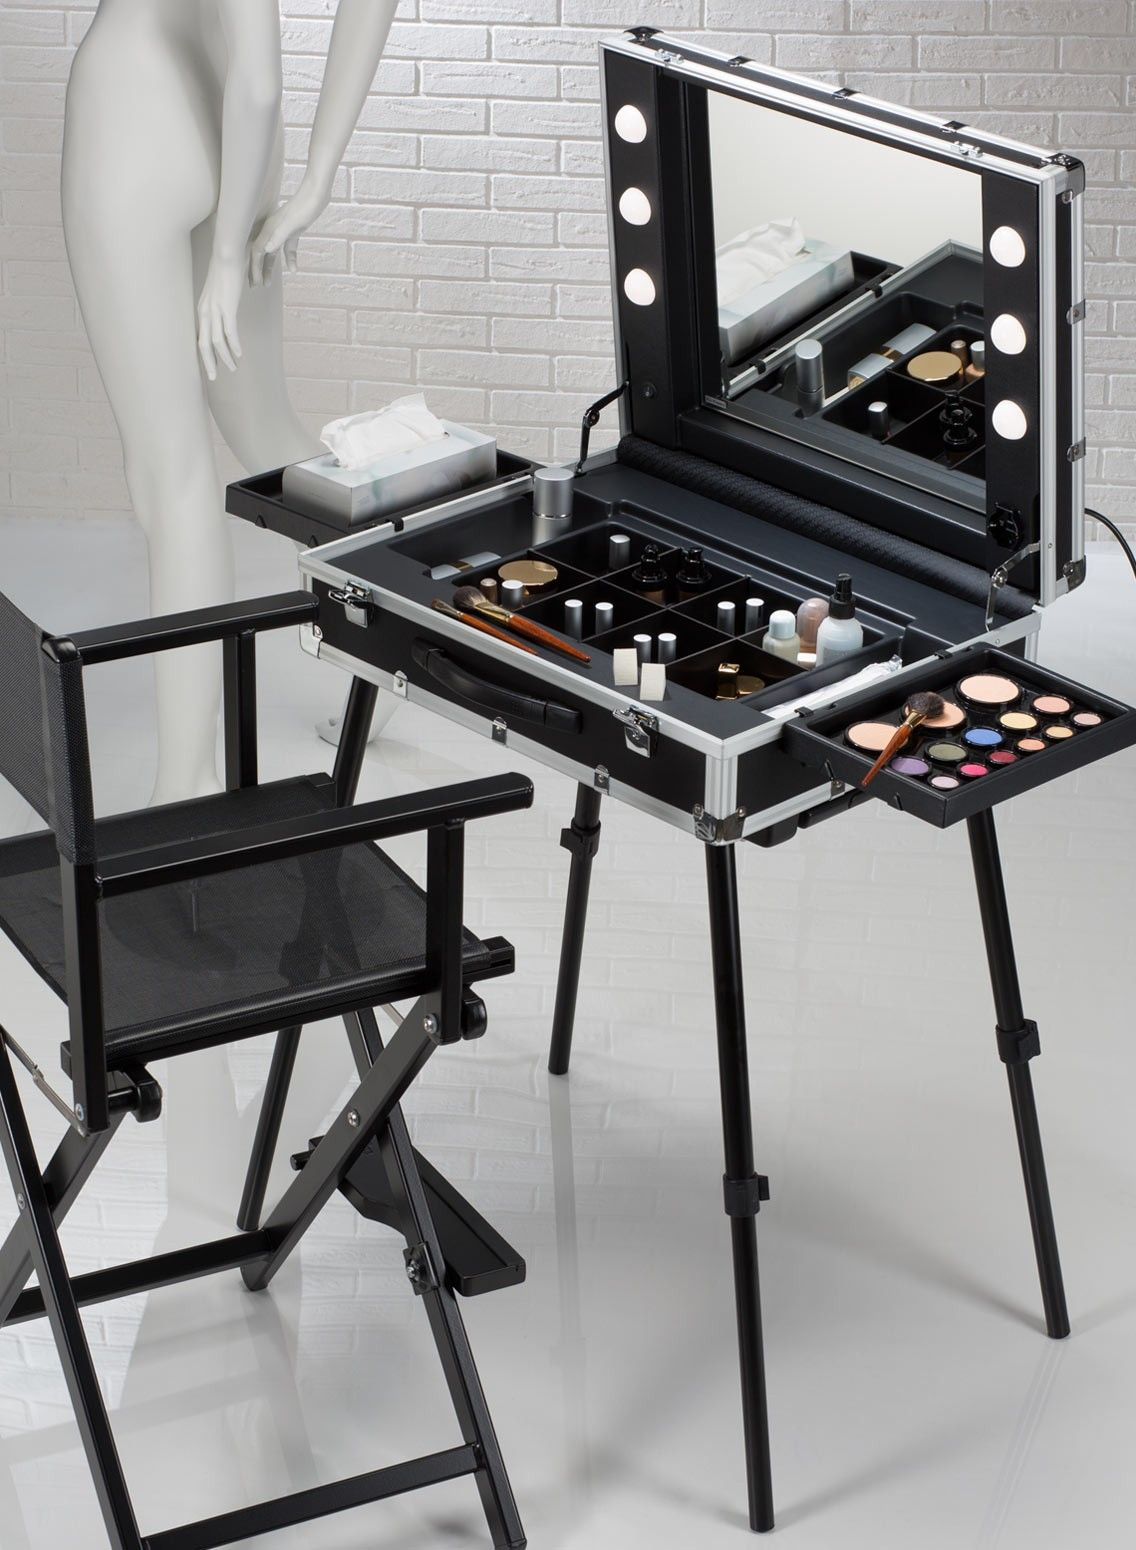 Light and easy transportable professional make up station. From trolley case to make up case in less than 40 secs. Starting from € 590.00 original mod.VT.BE Cantoni